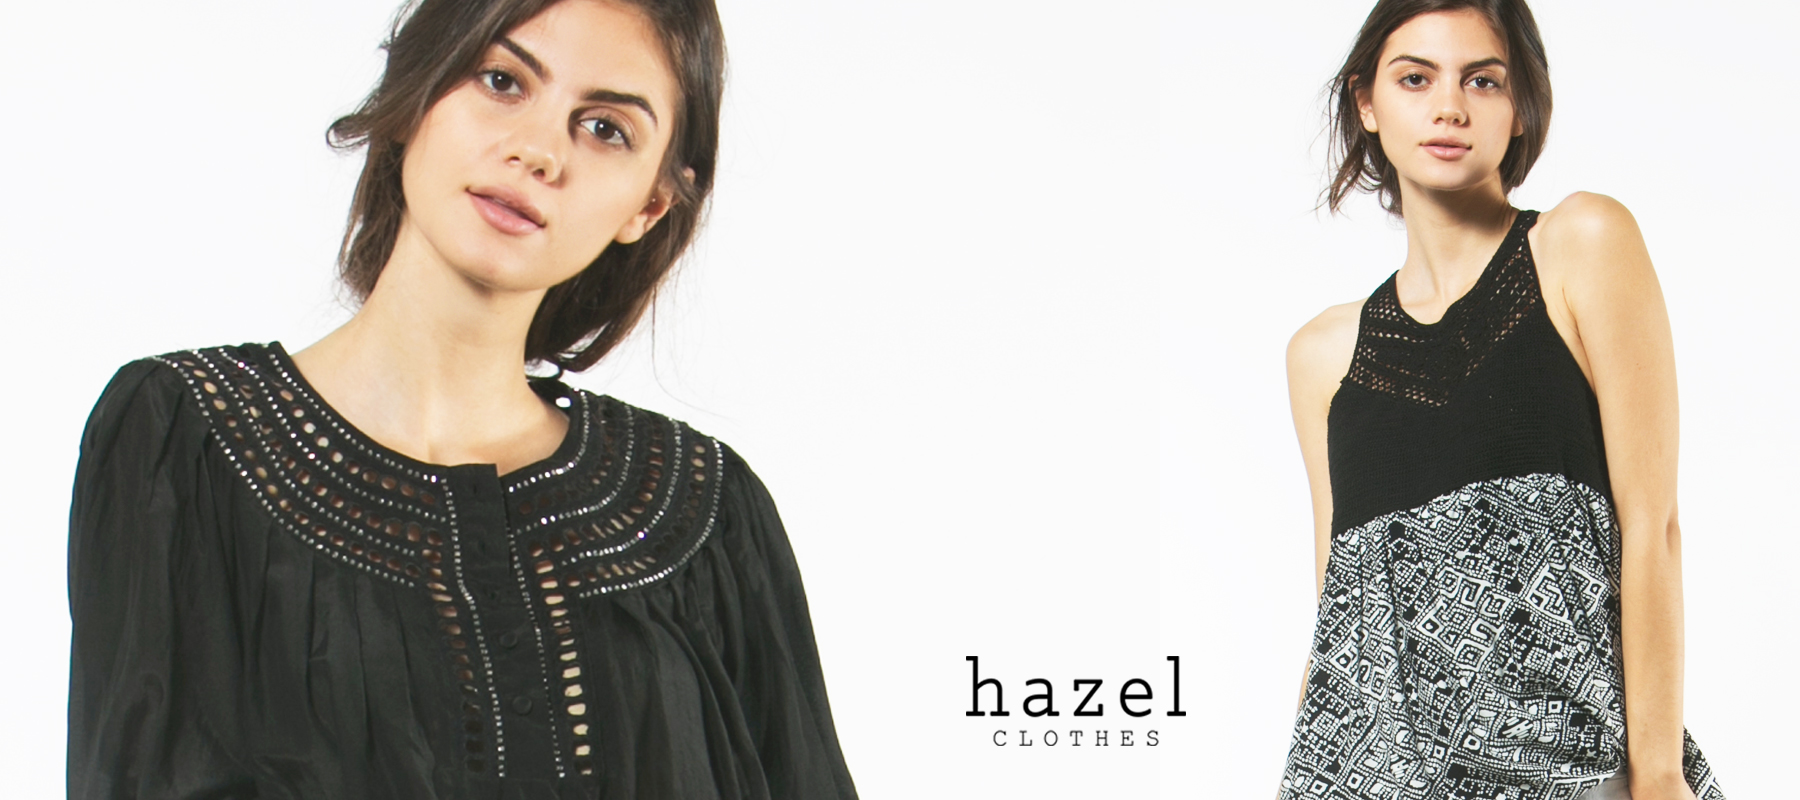 hazel clothes slide6